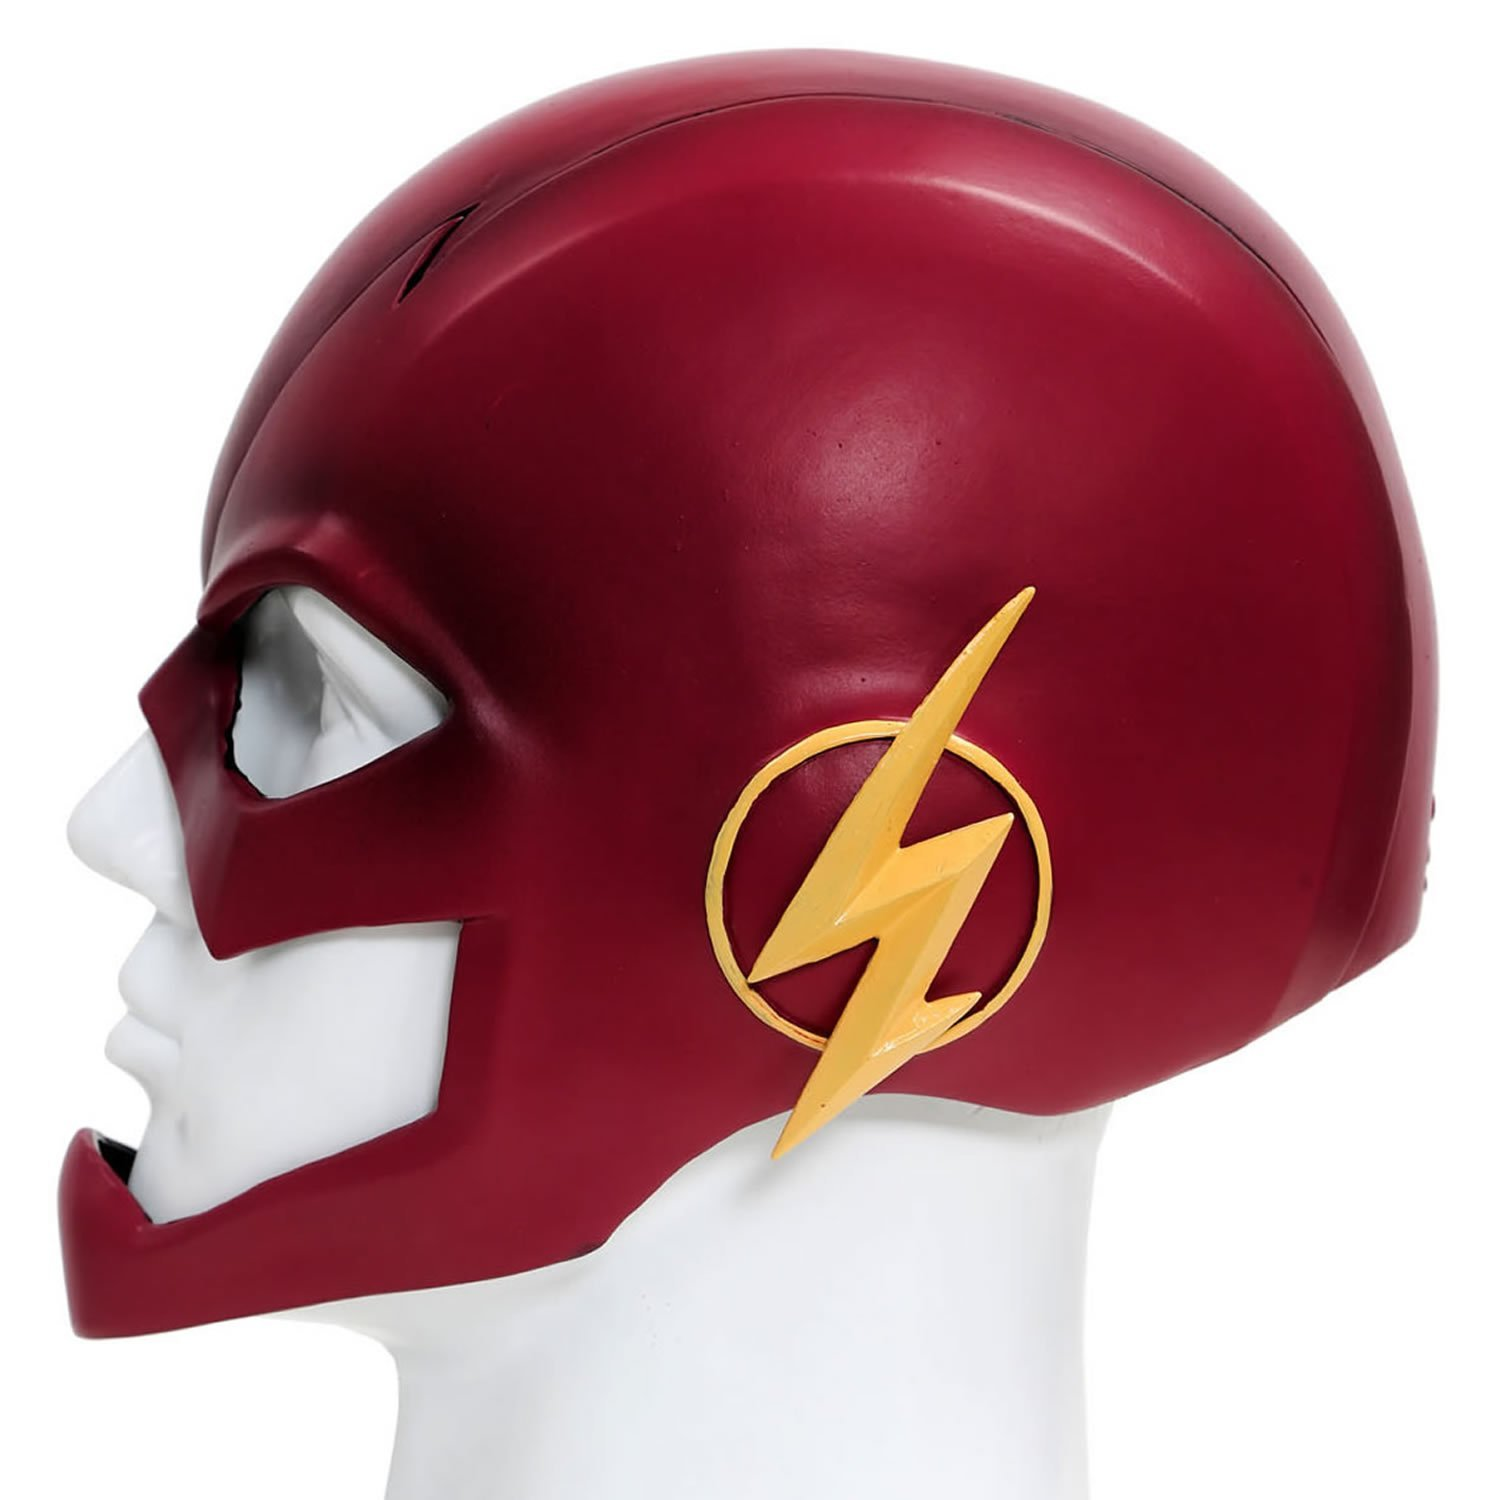 The Flash Mask - Red Side - CostumePop  sc 1 st  Costume Pop & the-flash-mask-costumepop-2 | Costume Pop